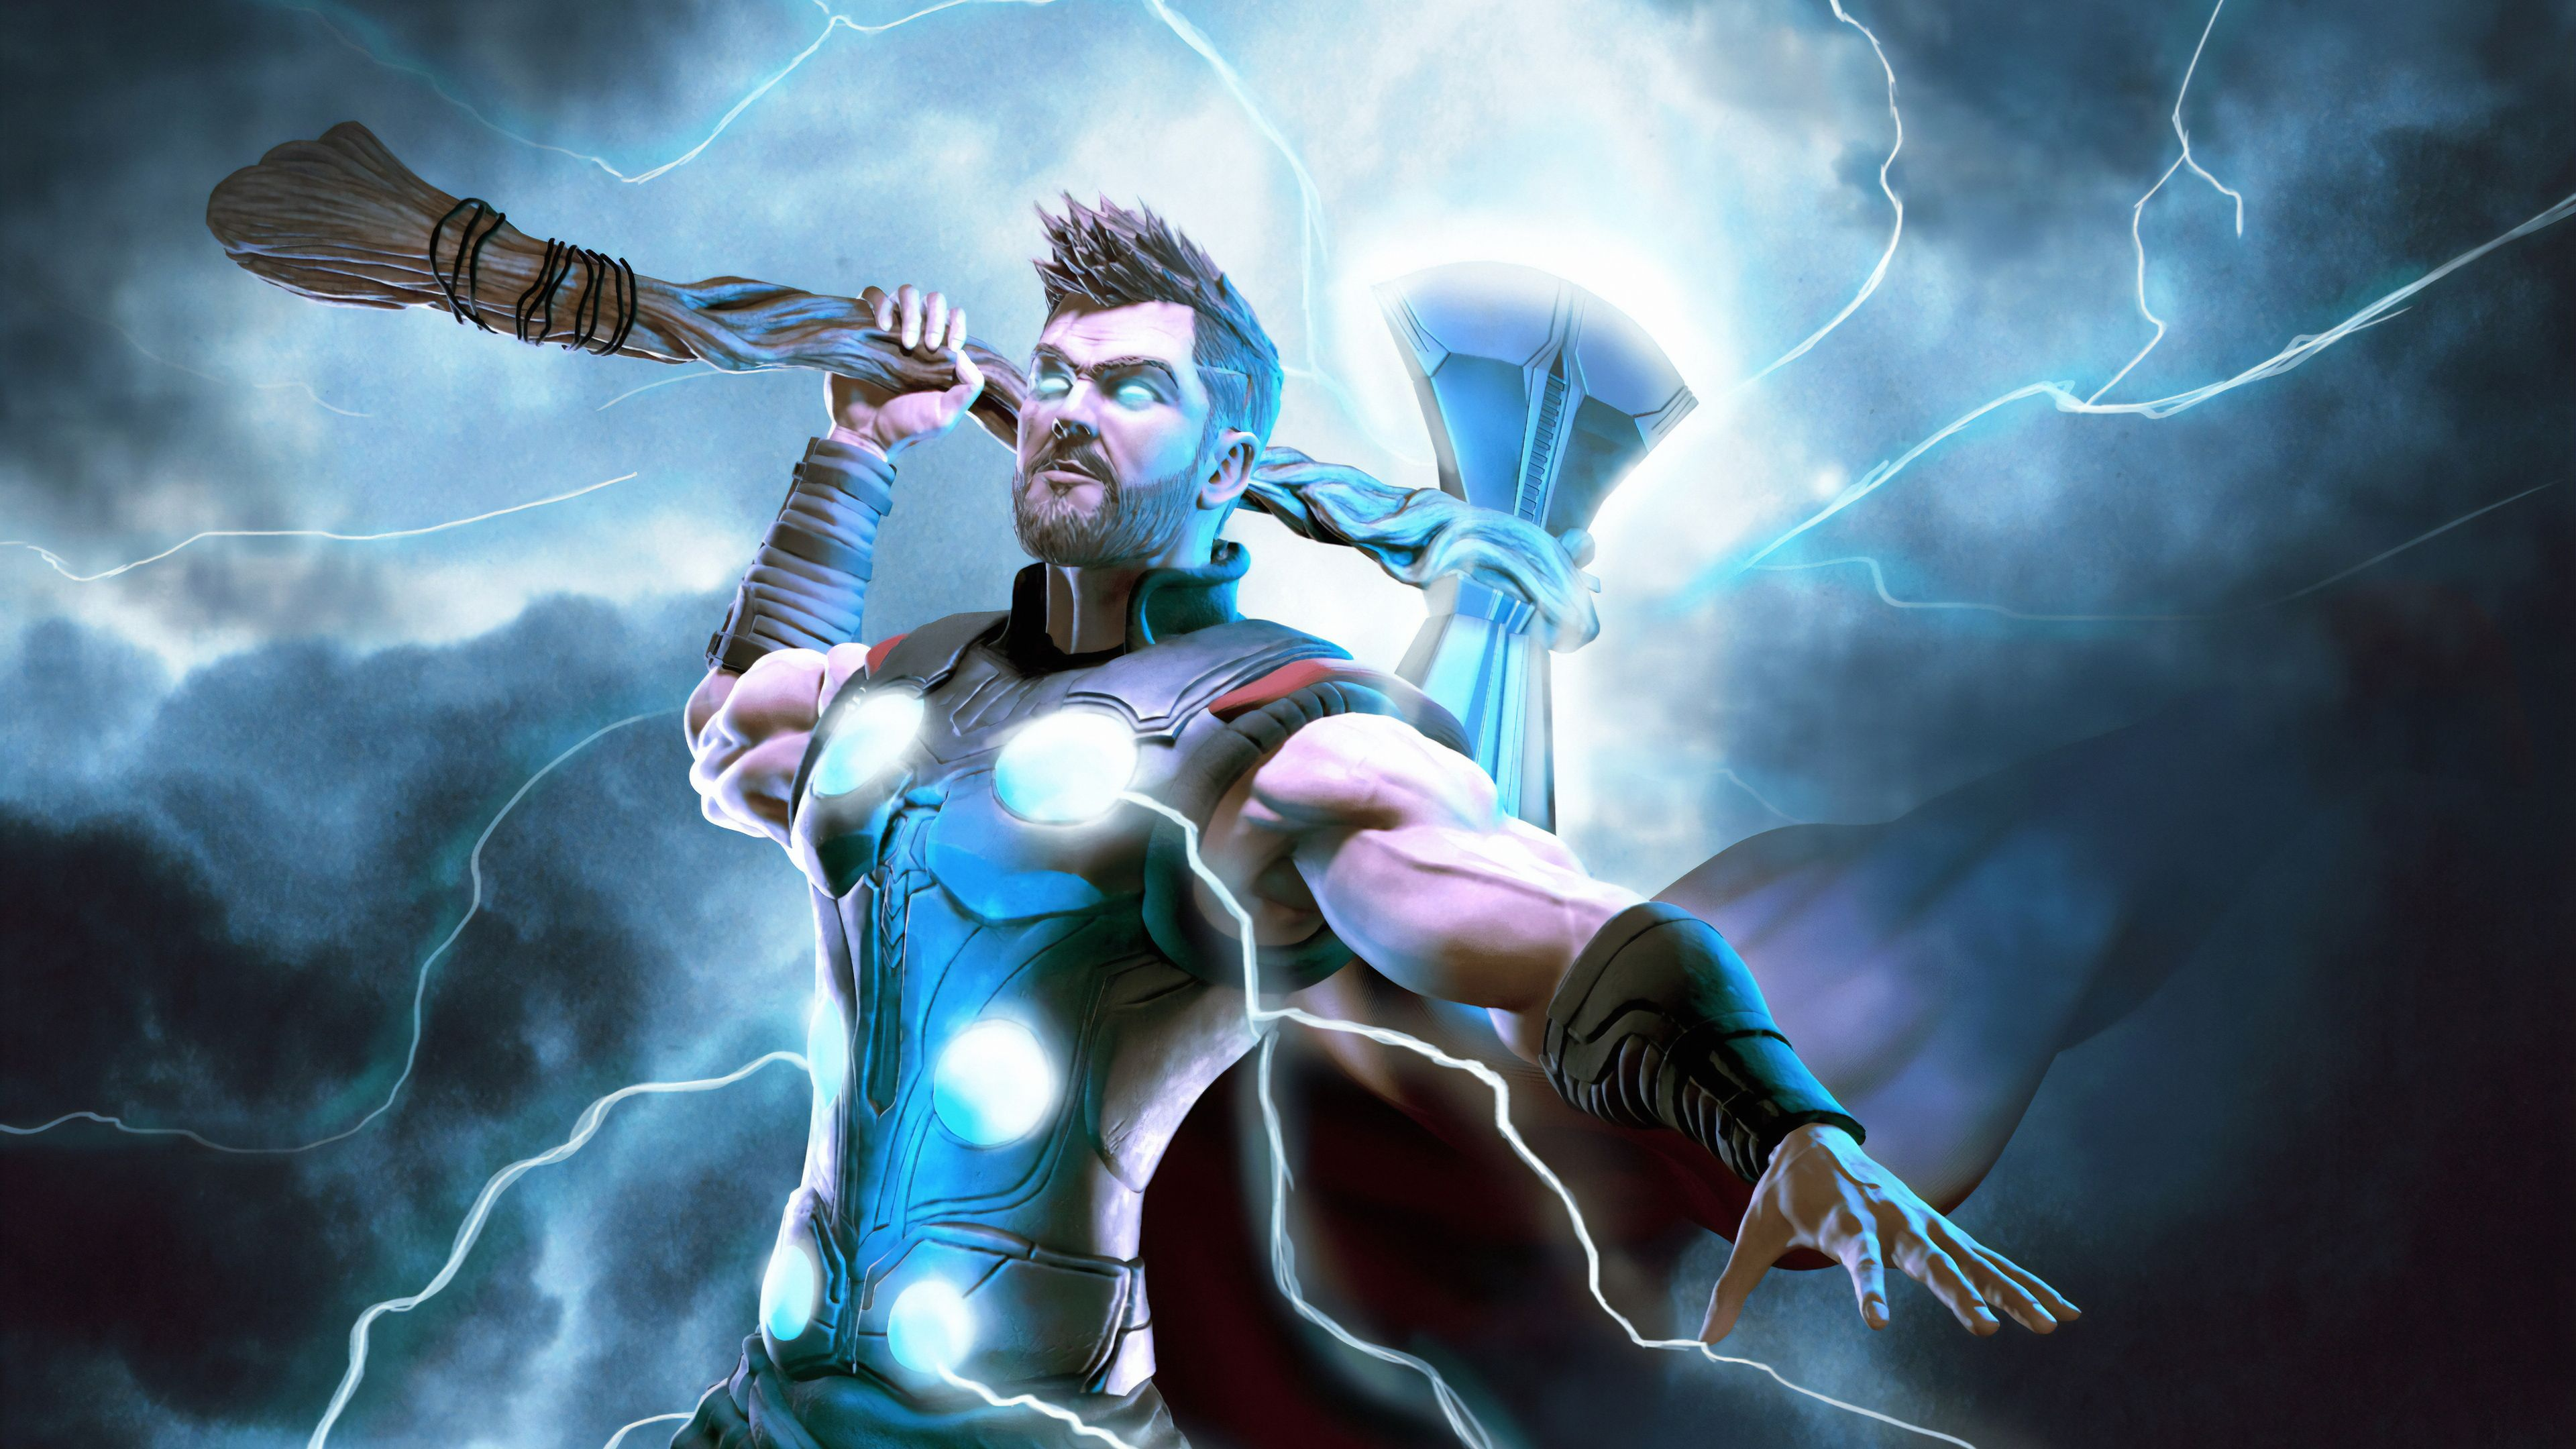 Thor Lighting Thor Wallpapers Superheroes Wallpapers Hd Wallpapers Digital Art Wallpapers Artwork Wallpape In 2020 Thor Wallpaper 4k Wallpapers For Pc Wallpaper Pc